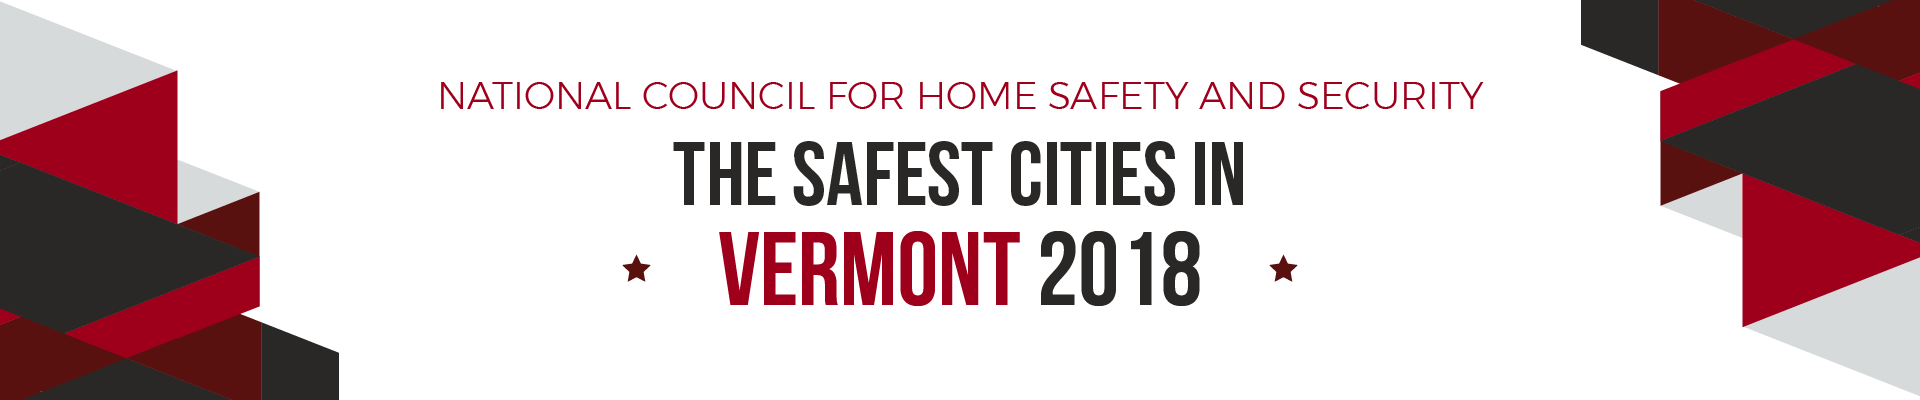 vermont safe cities 2018